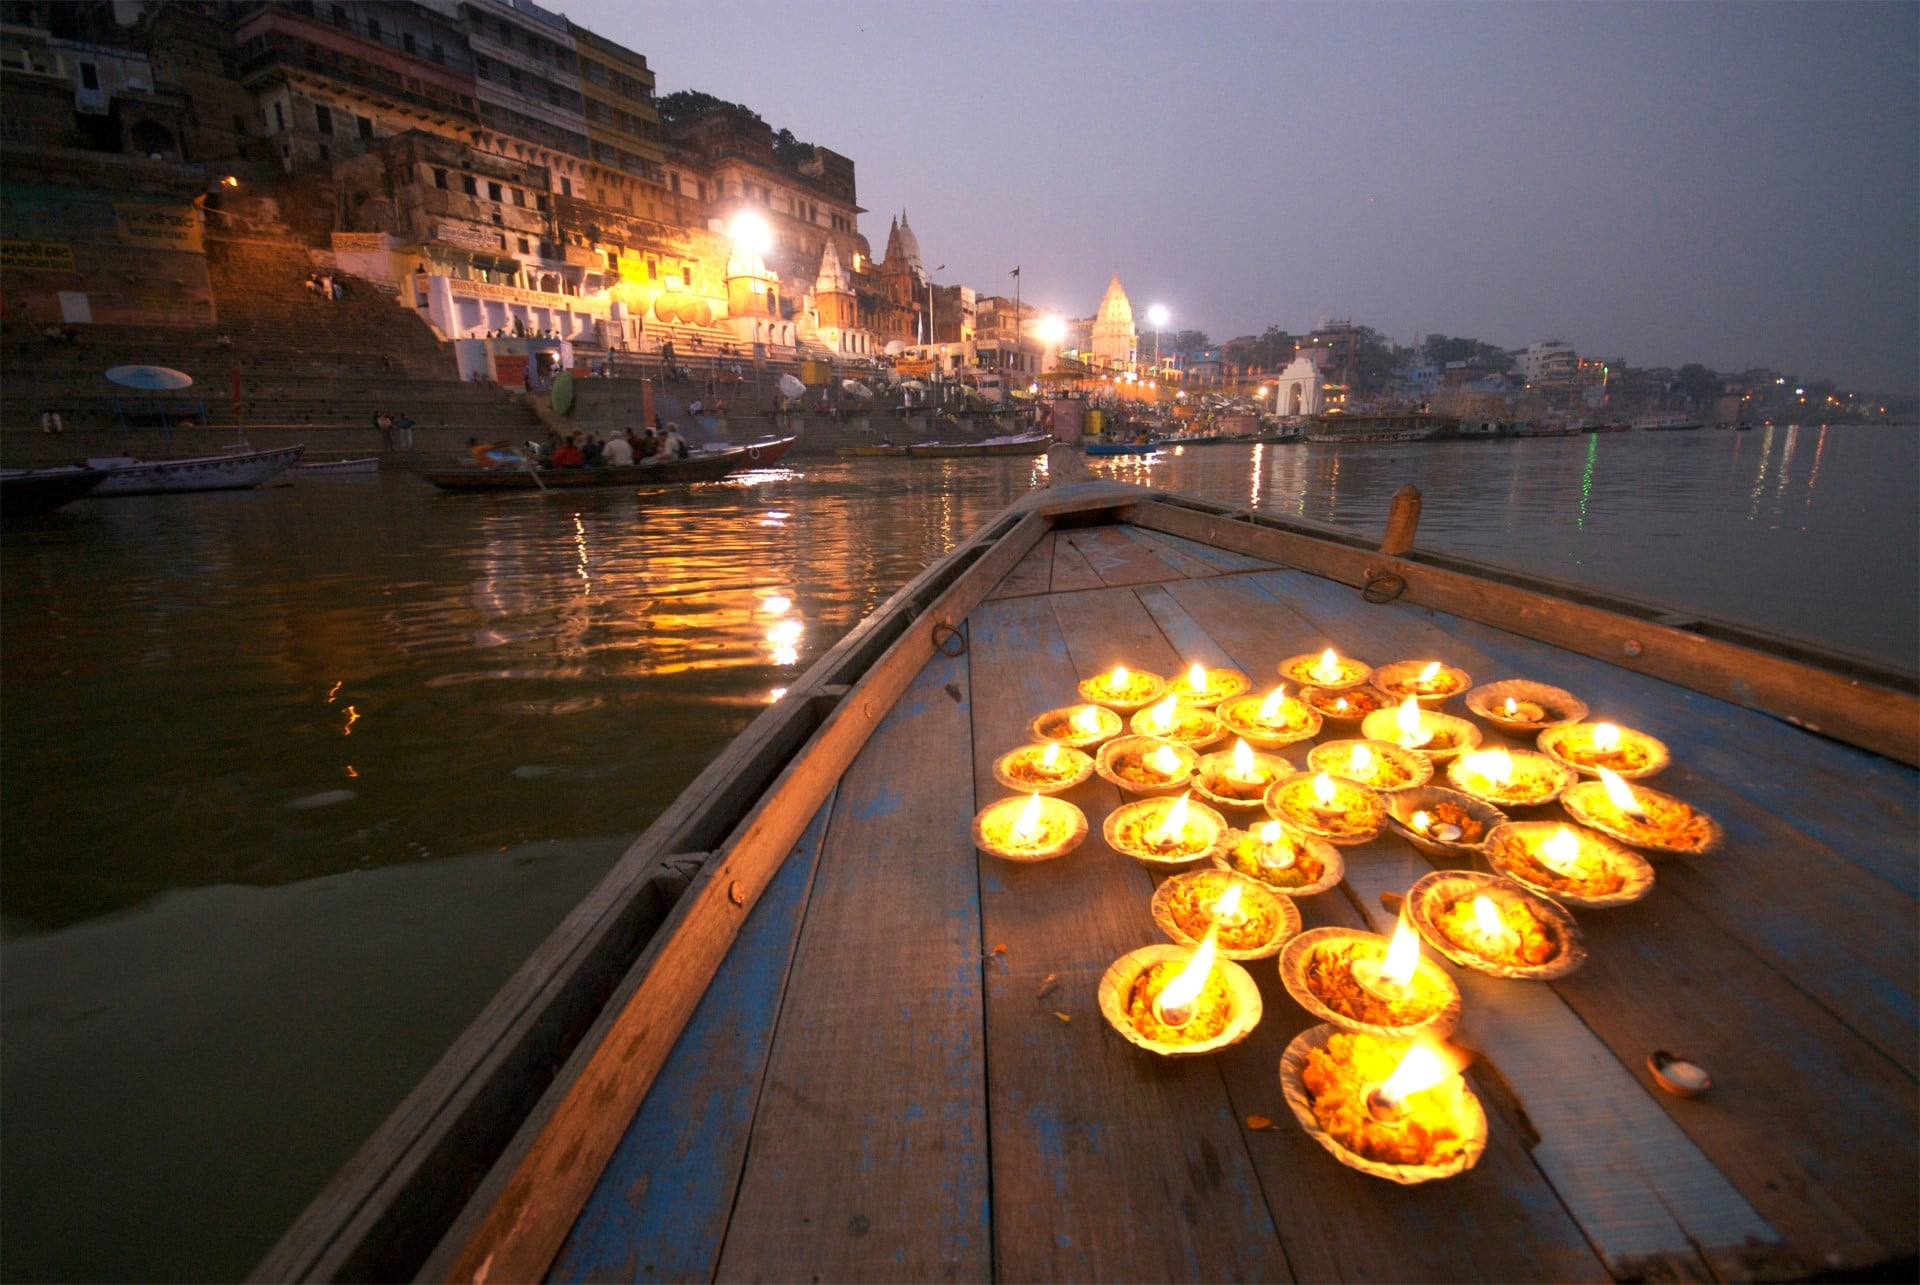 A candle boat on the river during Diwali